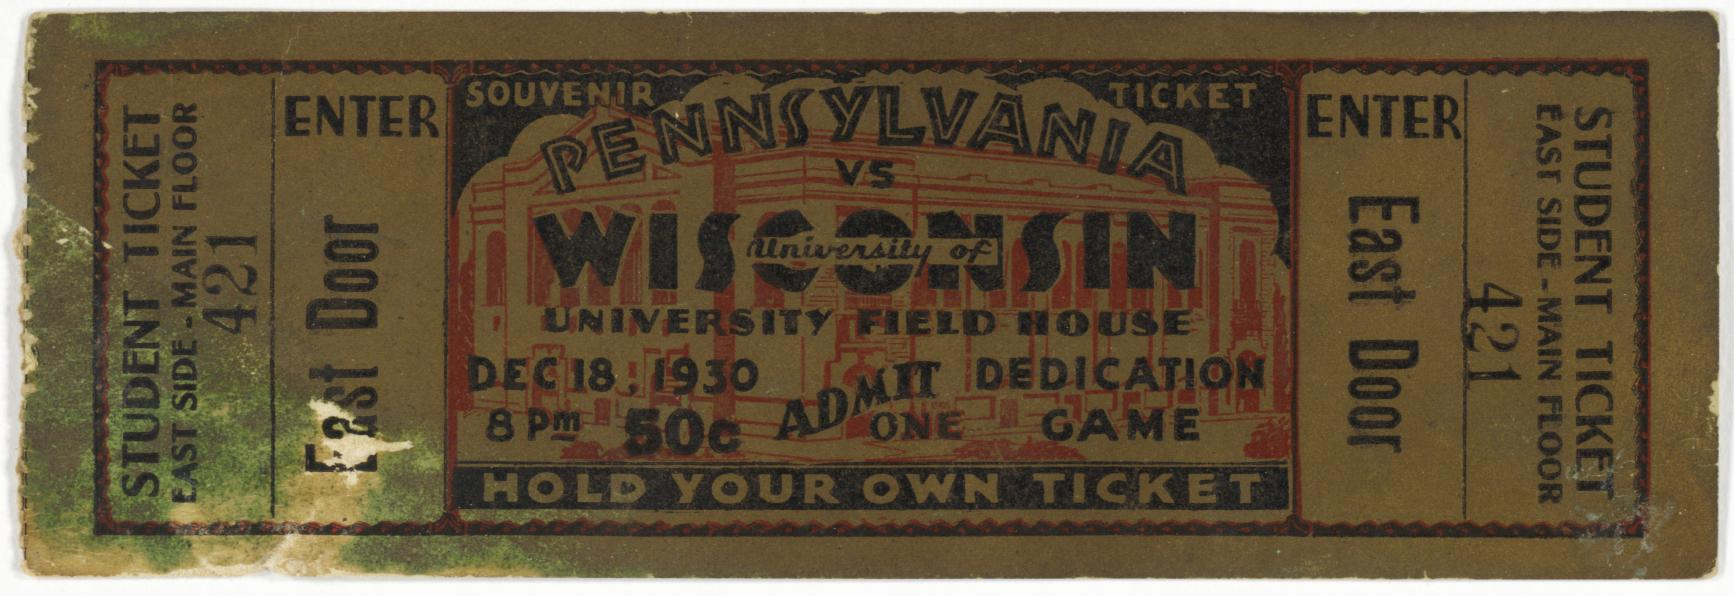 Student ticket, Field House dedicatory game (1 of 2)